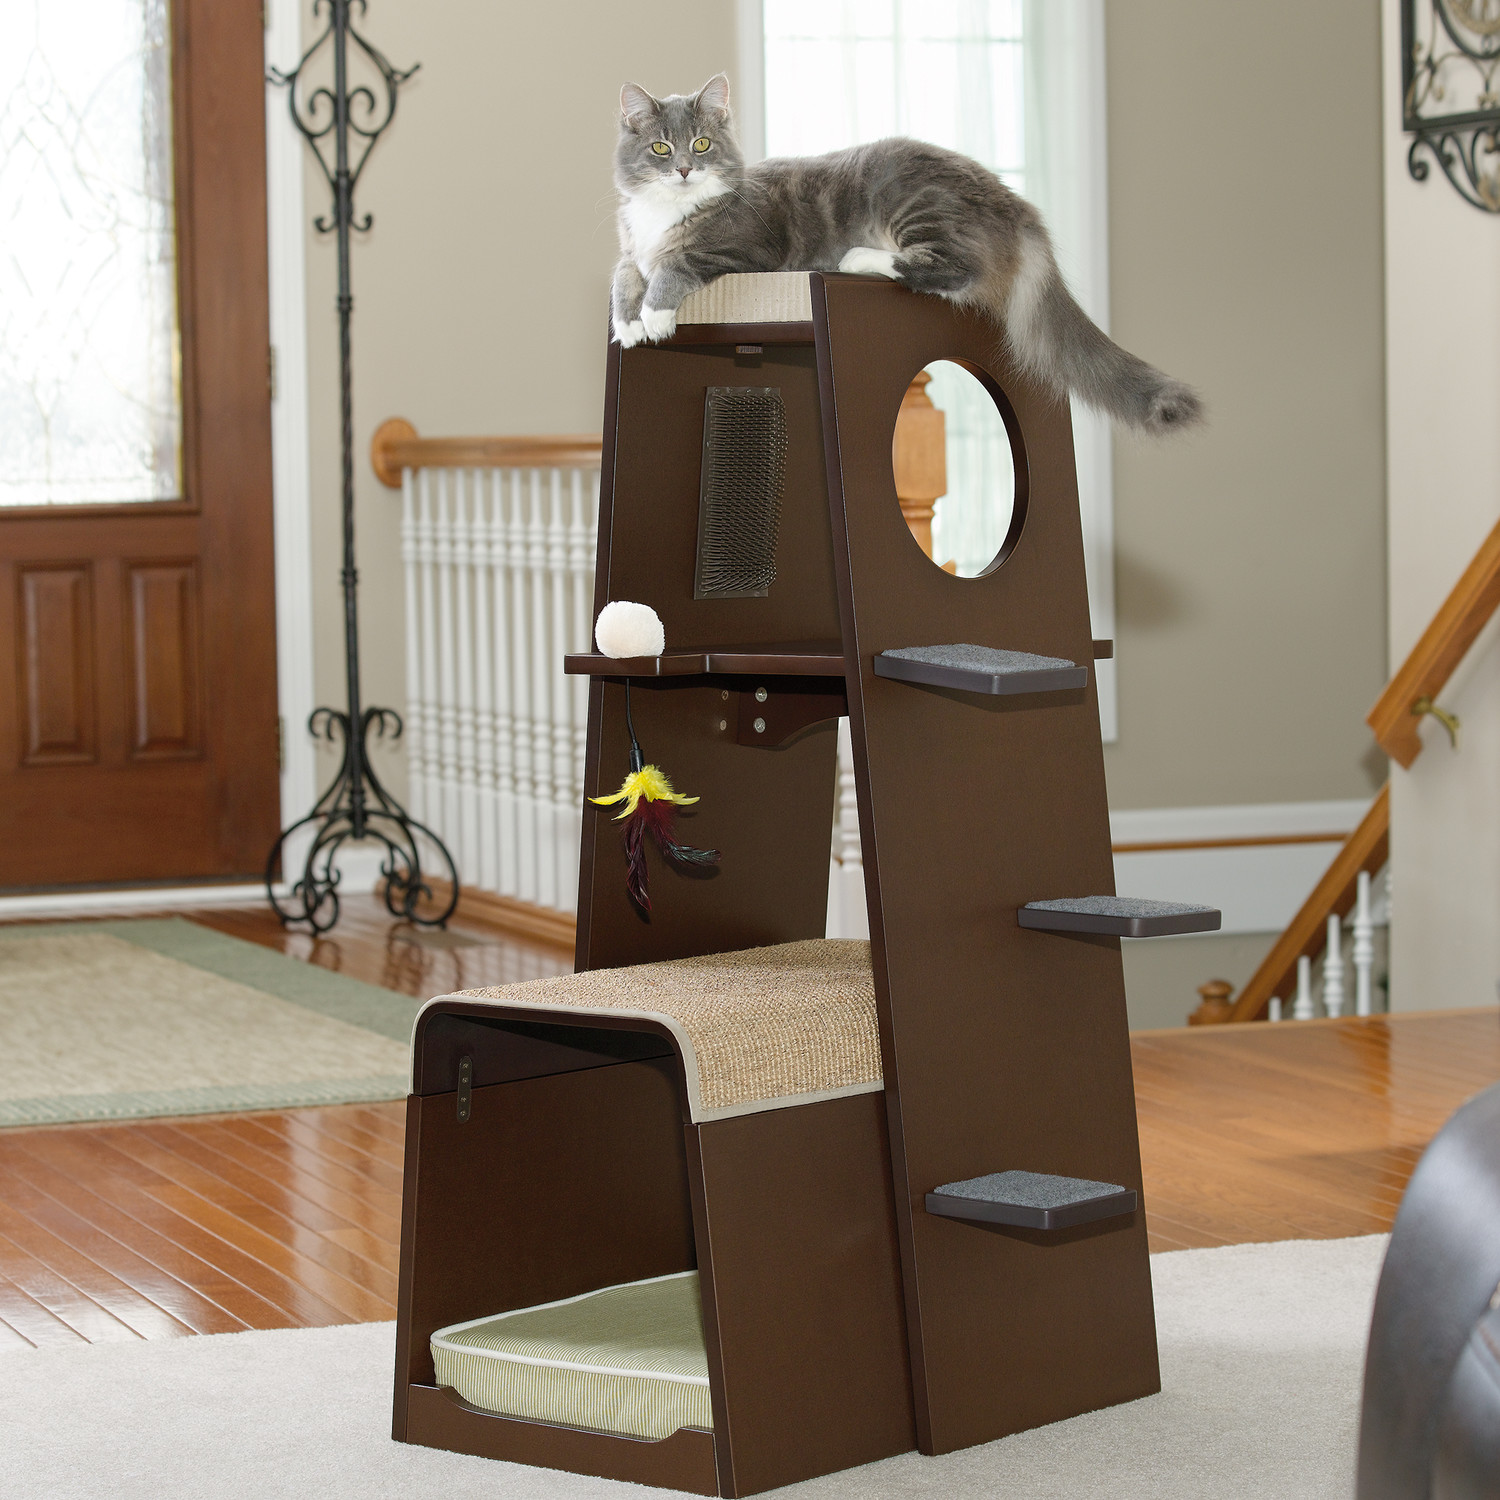 spoil your lovely cats with contemporary cat furniture  homesfeed - contemporary cat furniture in dark finish equiped with stairs completedwith cat